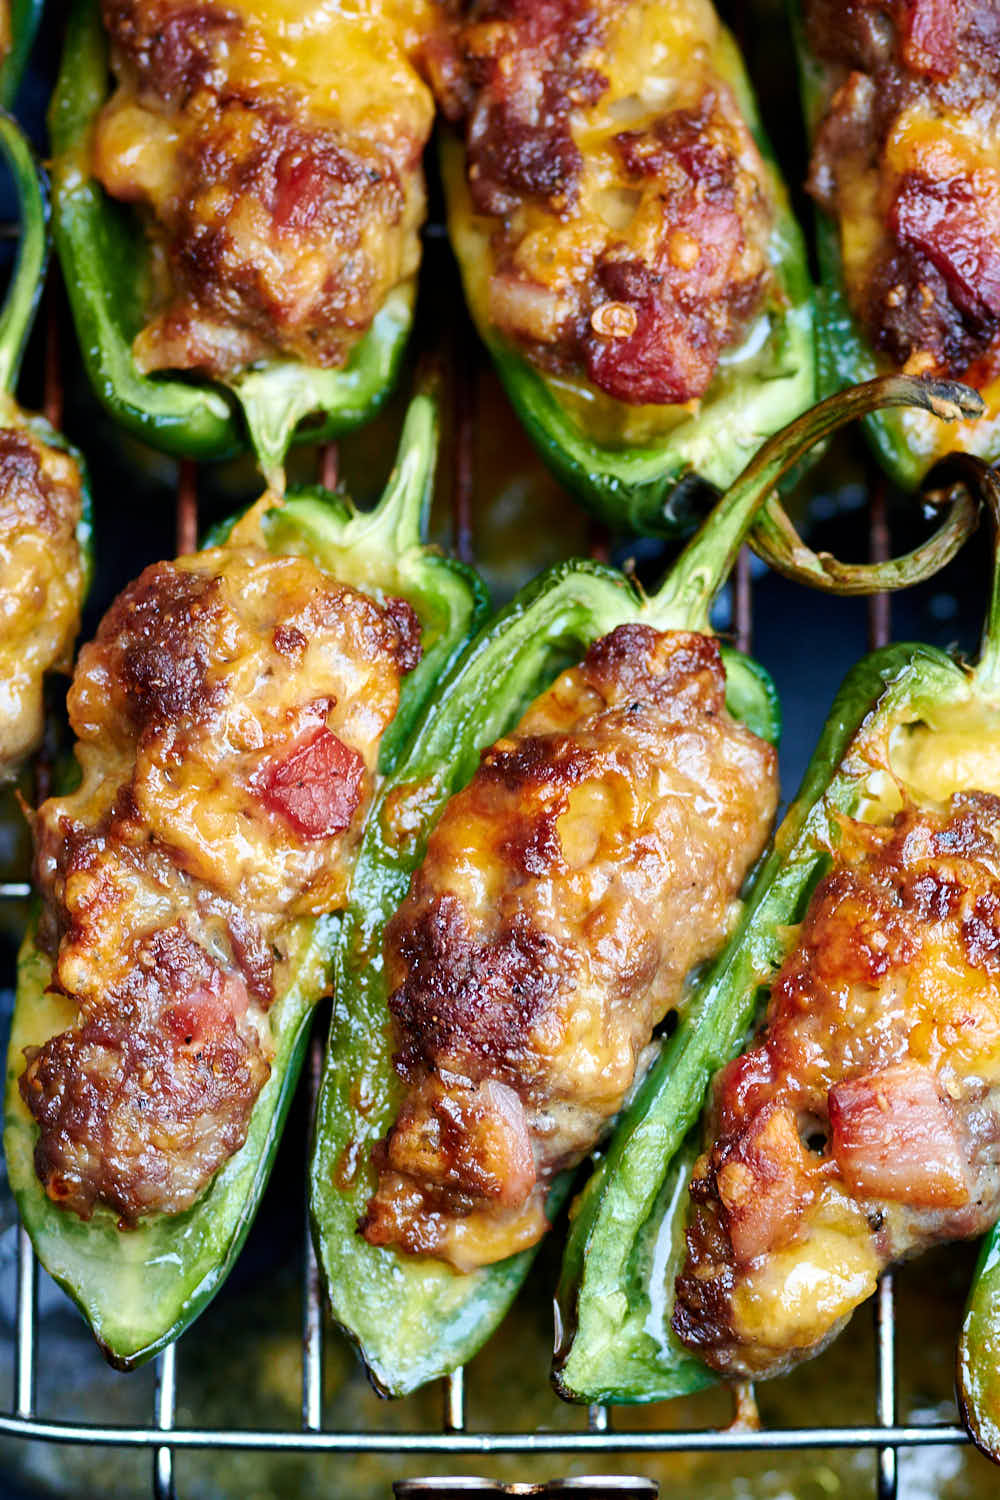 Juicy, moist jalapeno poppers on an air fryer rack.